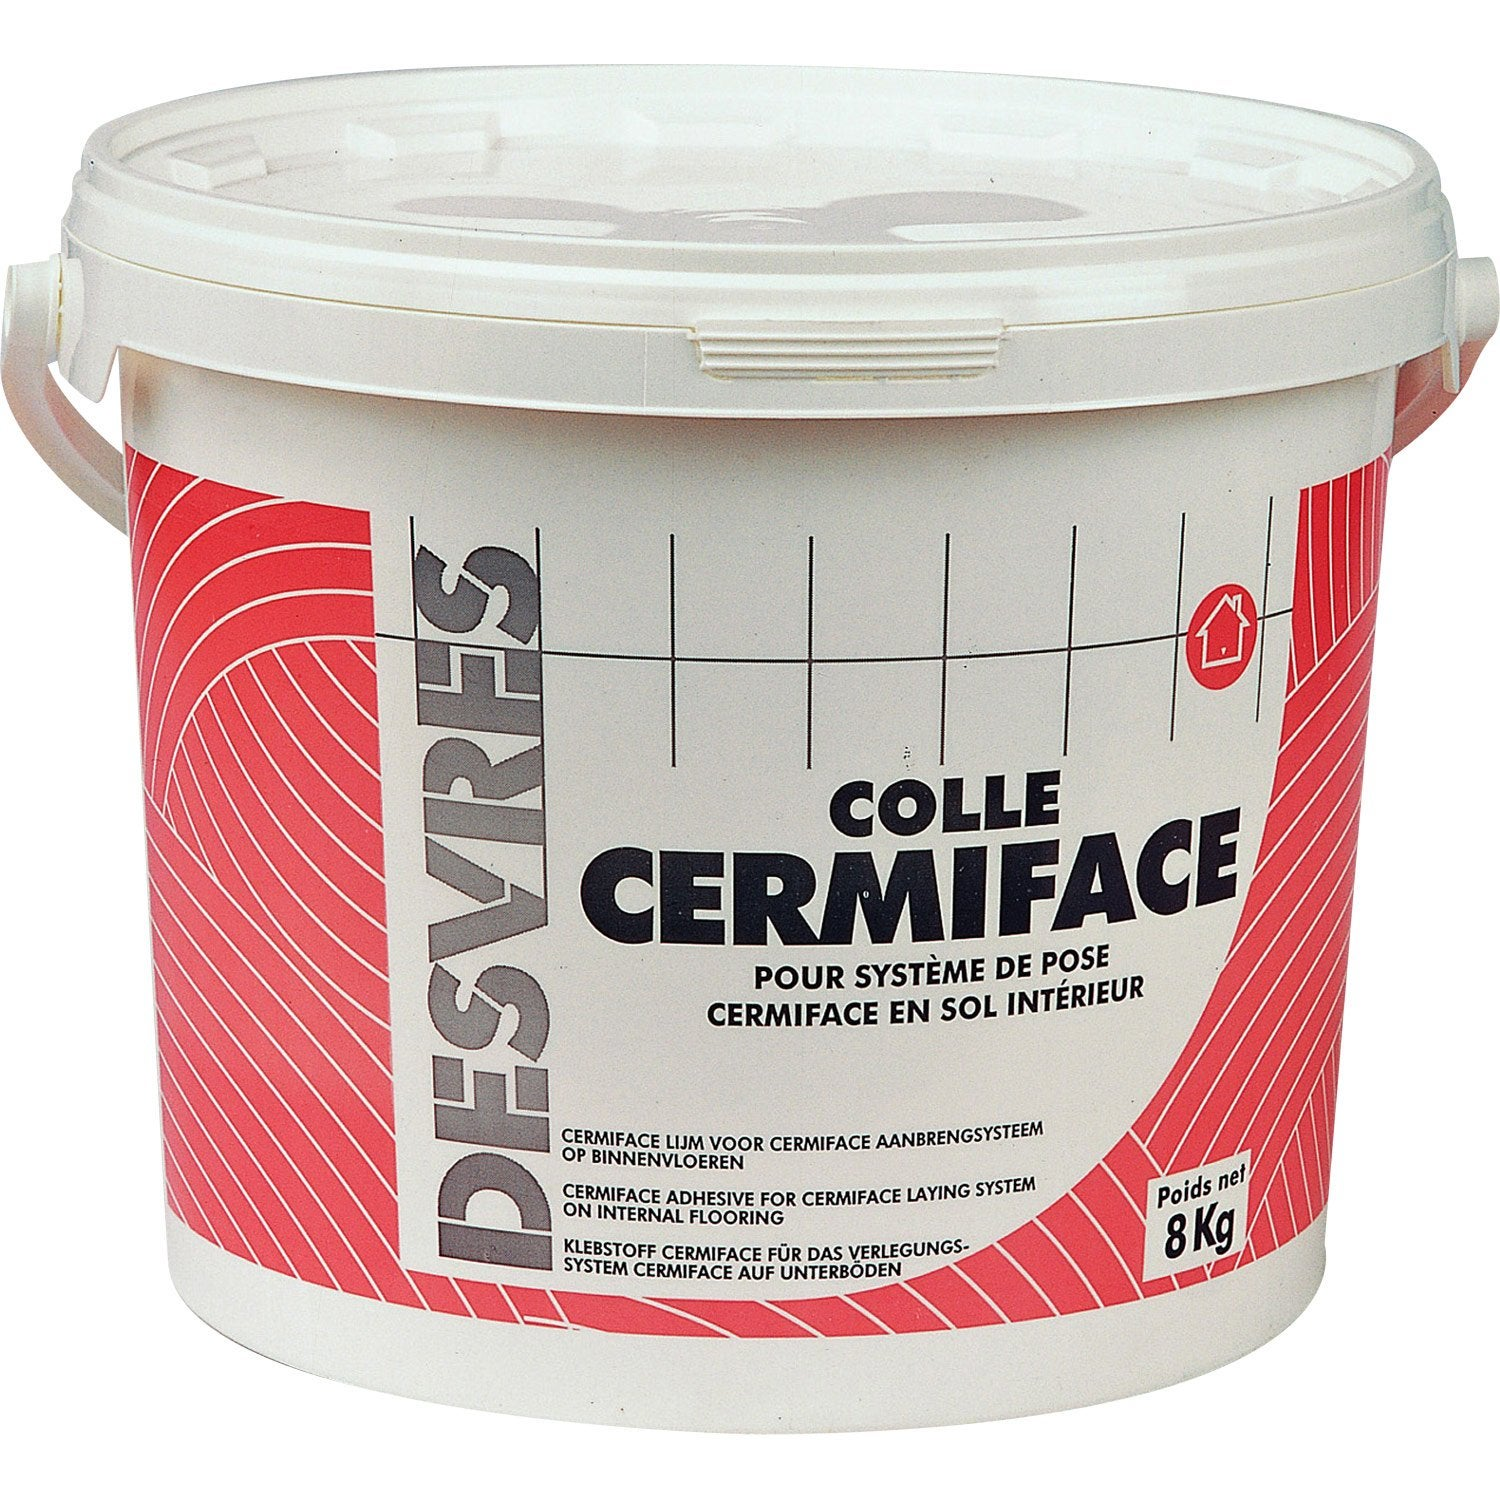 Colle desvres 8 kg leroy merlin - Colle placo leroy merlin ...